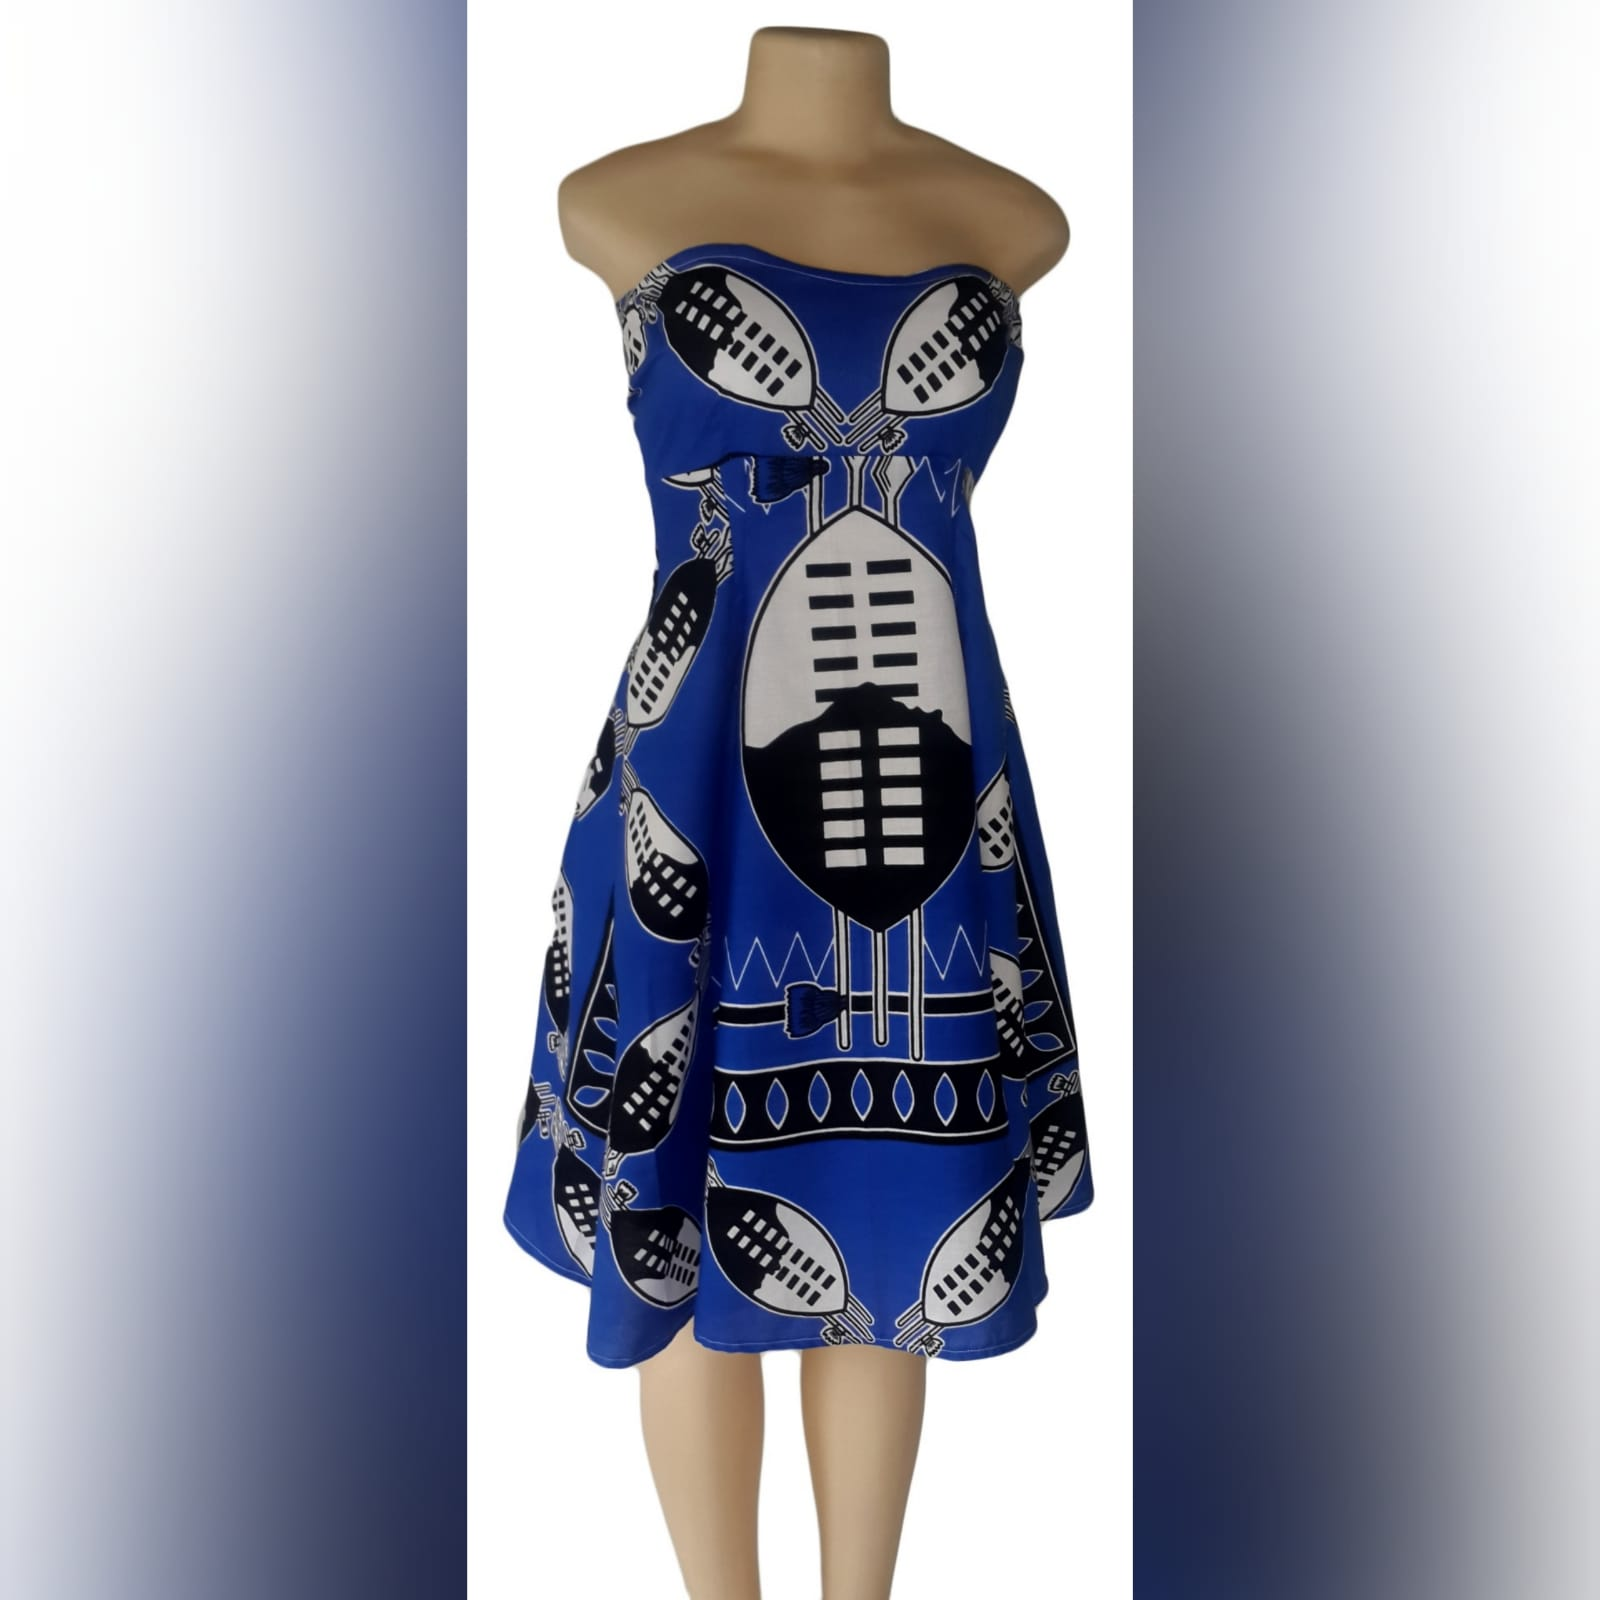 Modern traditonal royal blue swazi dress 1 swati royal blue boob tube knee length dress. Delivered to client